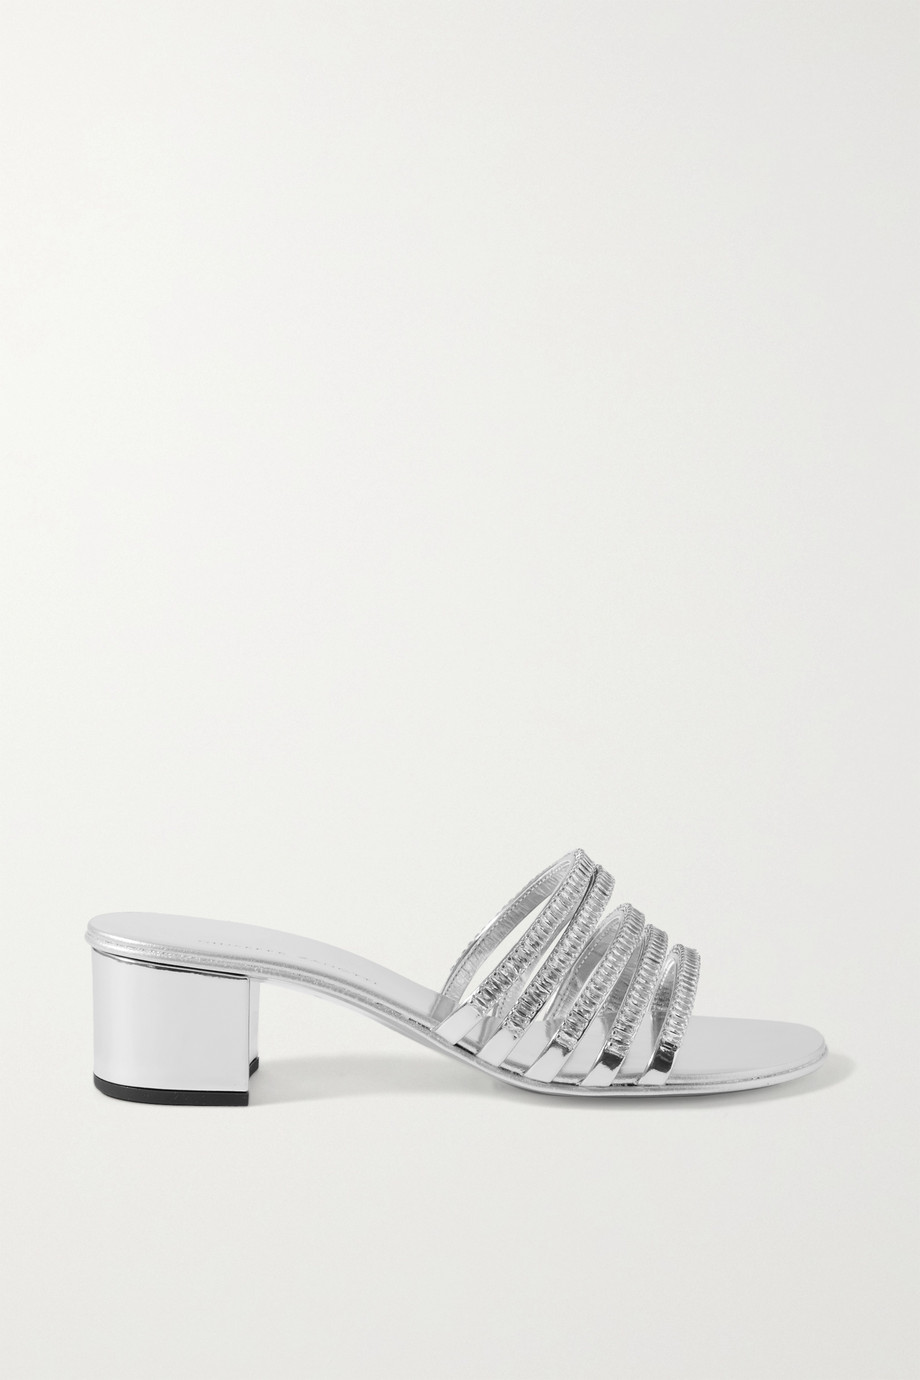 Giuseppe Zanotti Crystal-embellished metallic leather mules